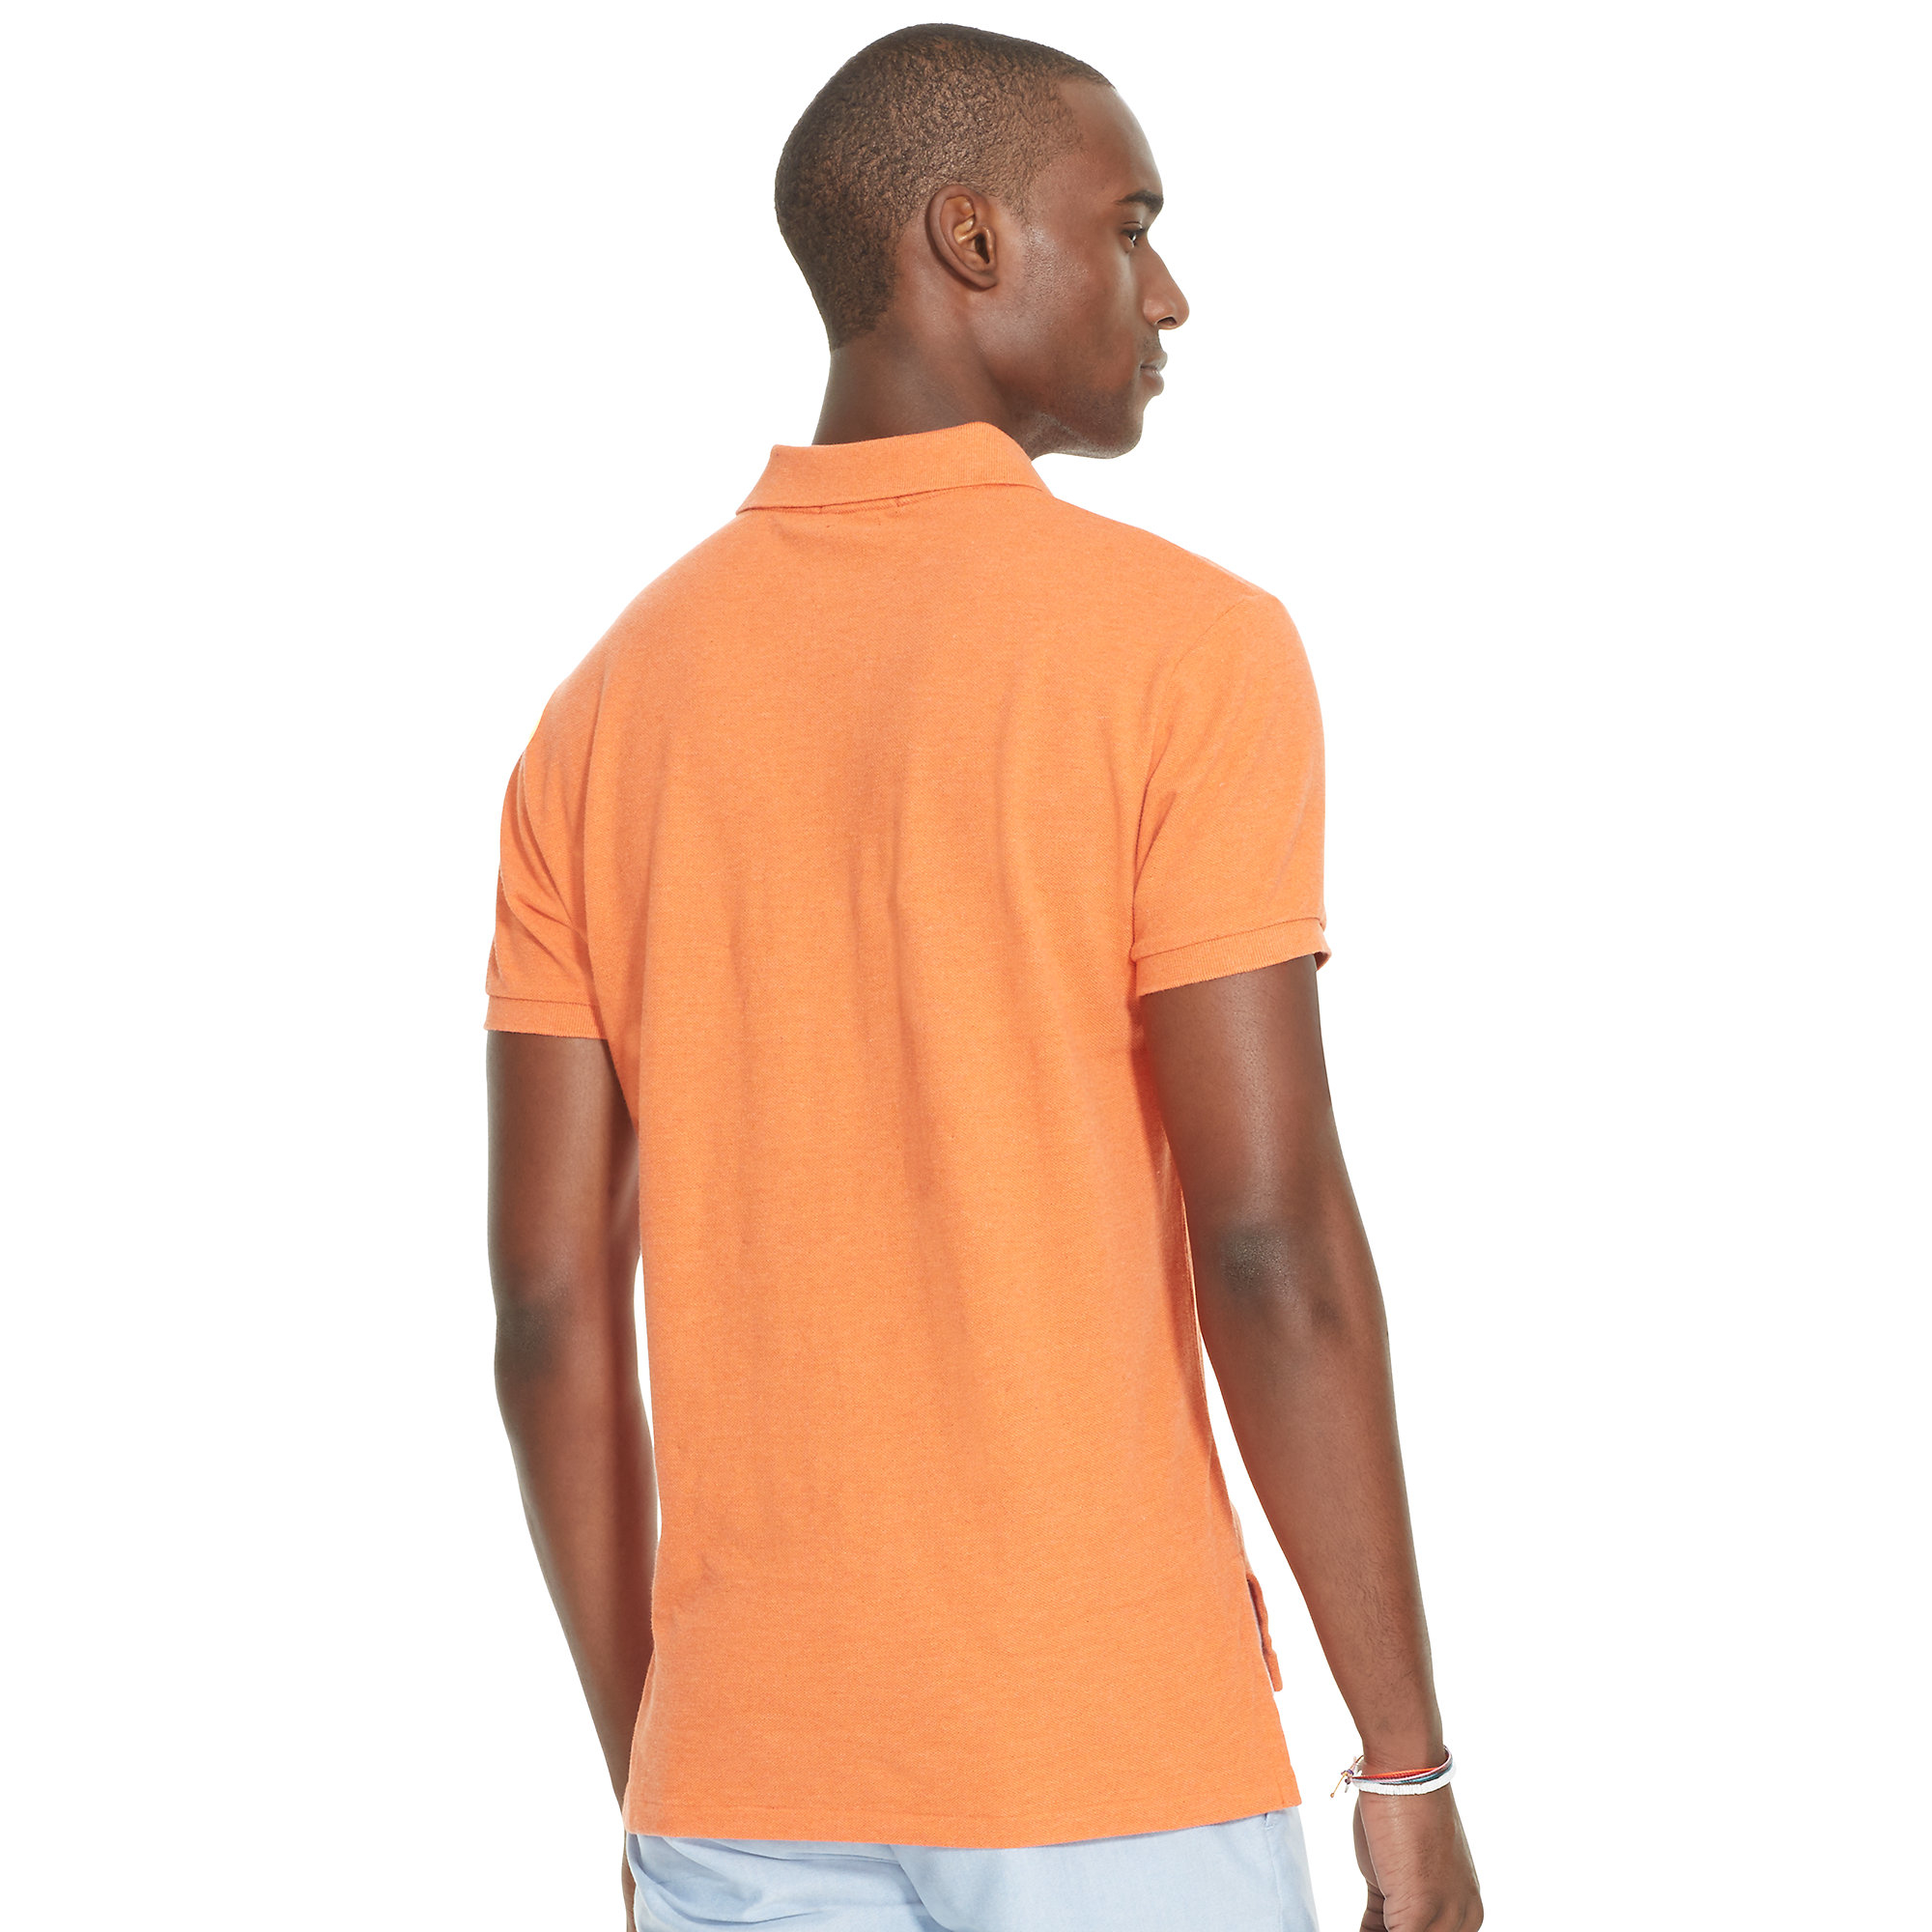 polo ralph lauren slim fit mesh polo shirt in orange for men lyst. Black Bedroom Furniture Sets. Home Design Ideas